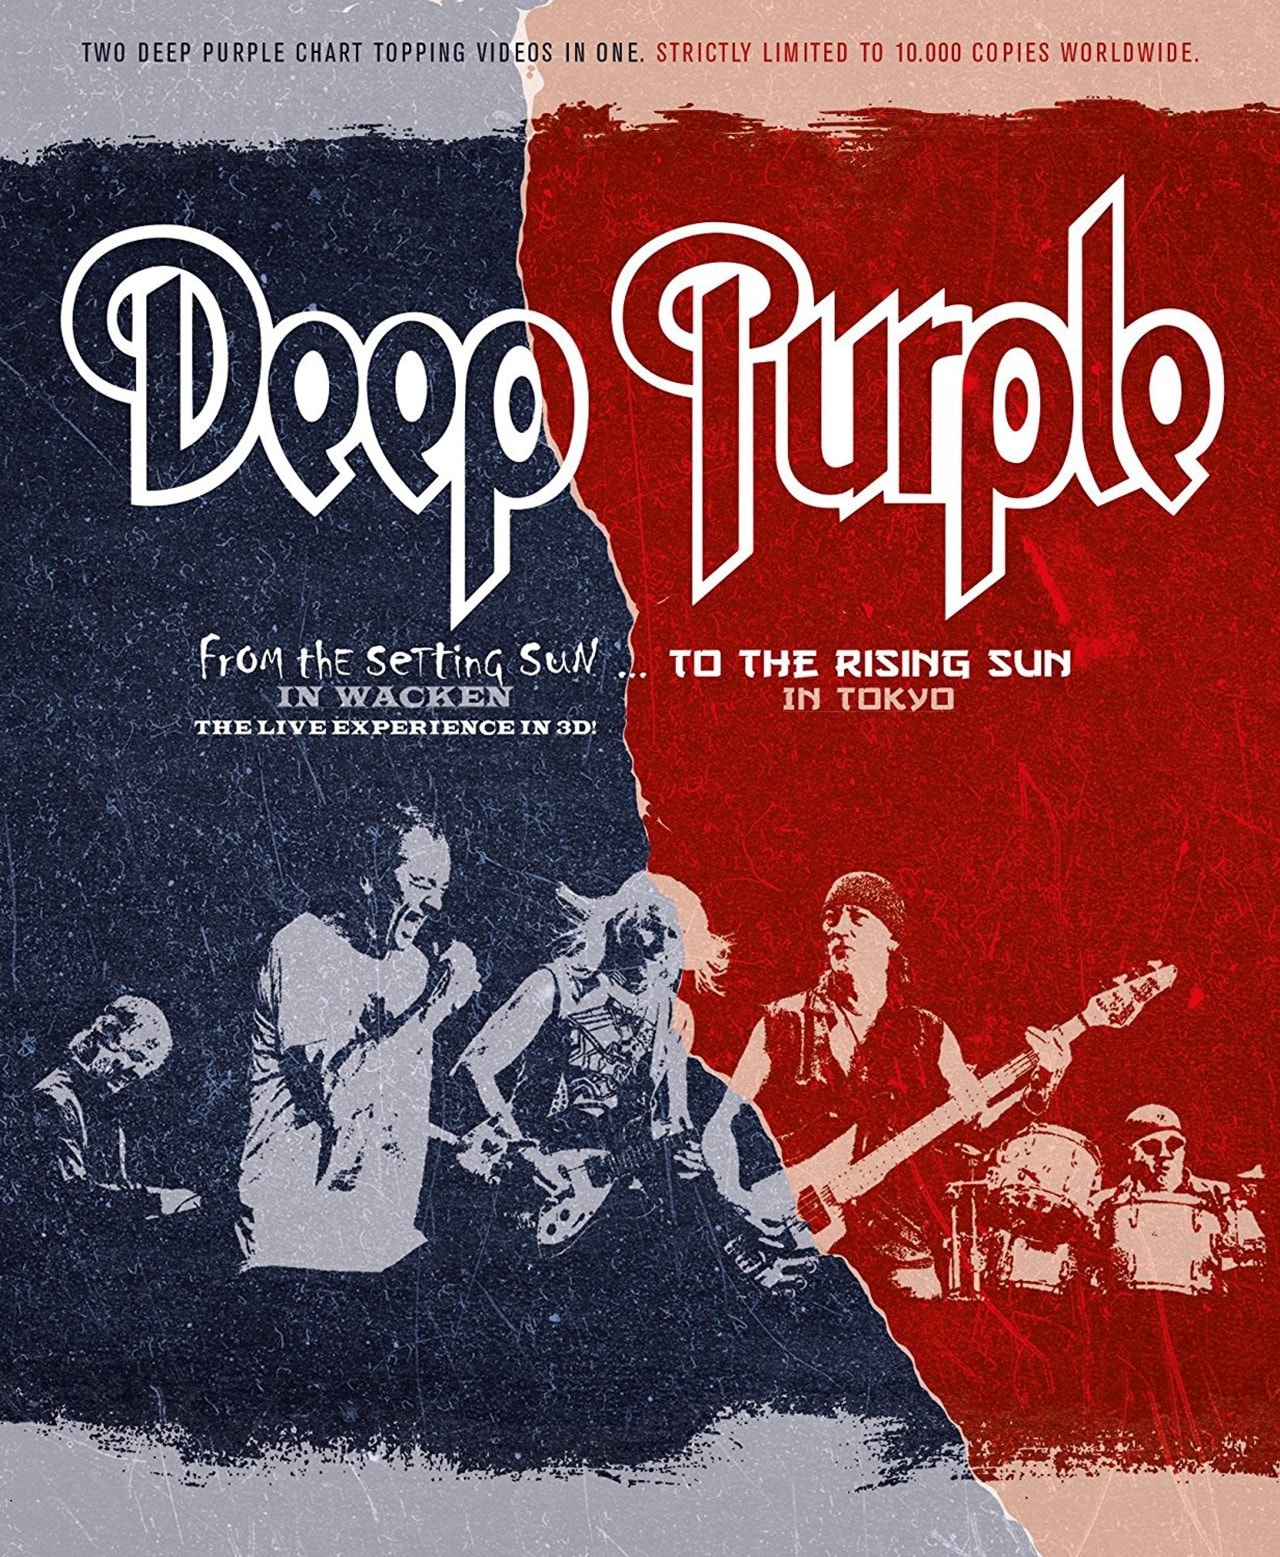 Deep Purple: From the Setting Sun in Wacken... To the Rising... - 1